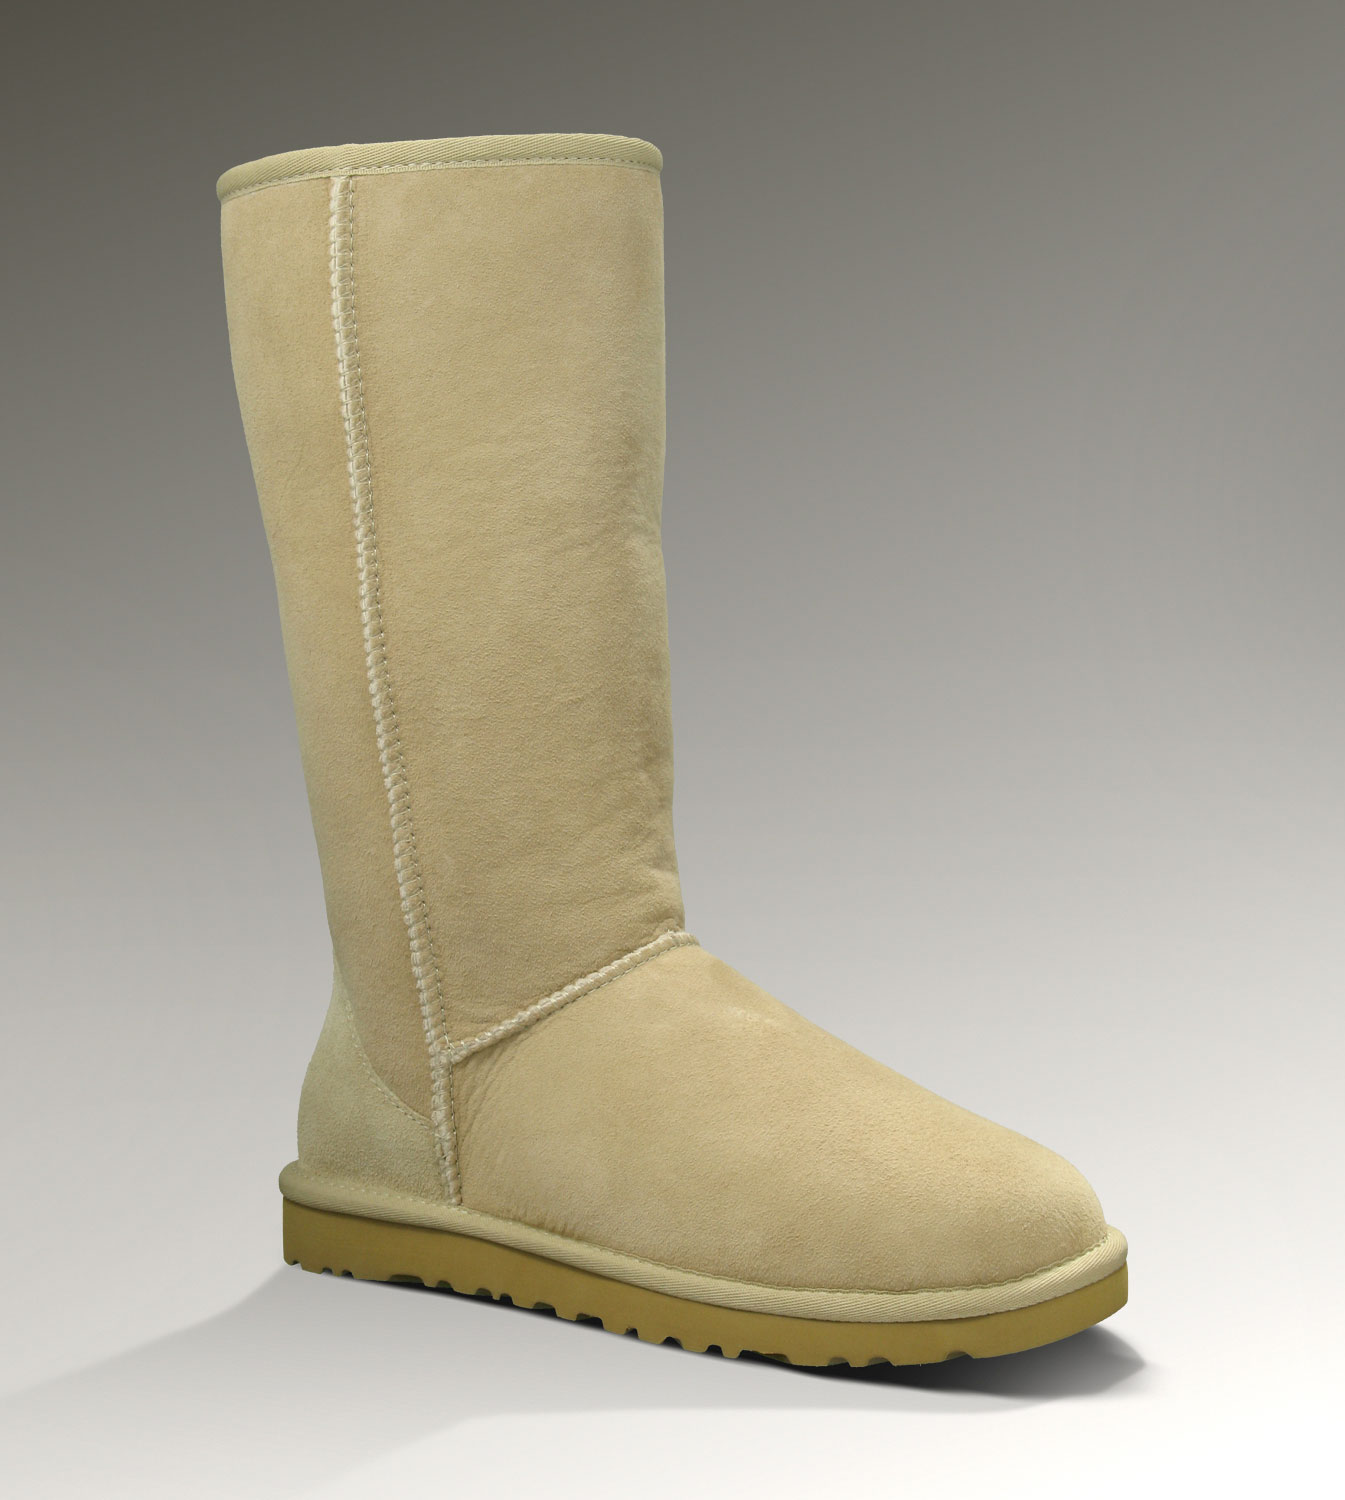 UGG Classic Tall 5815 Sand Boots